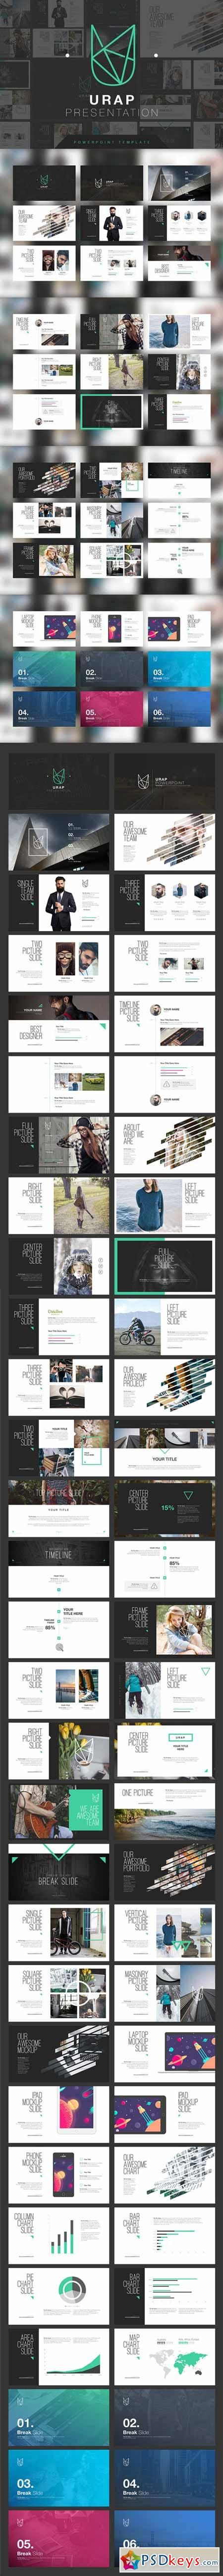 Modern architecture brochure 24 pages a4 a5 template indesign indd modern architecture brochure 24 pages a4 a5 template indesign indd brochure templates pinterest brochures modern architecture and a5 toneelgroepblik Gallery